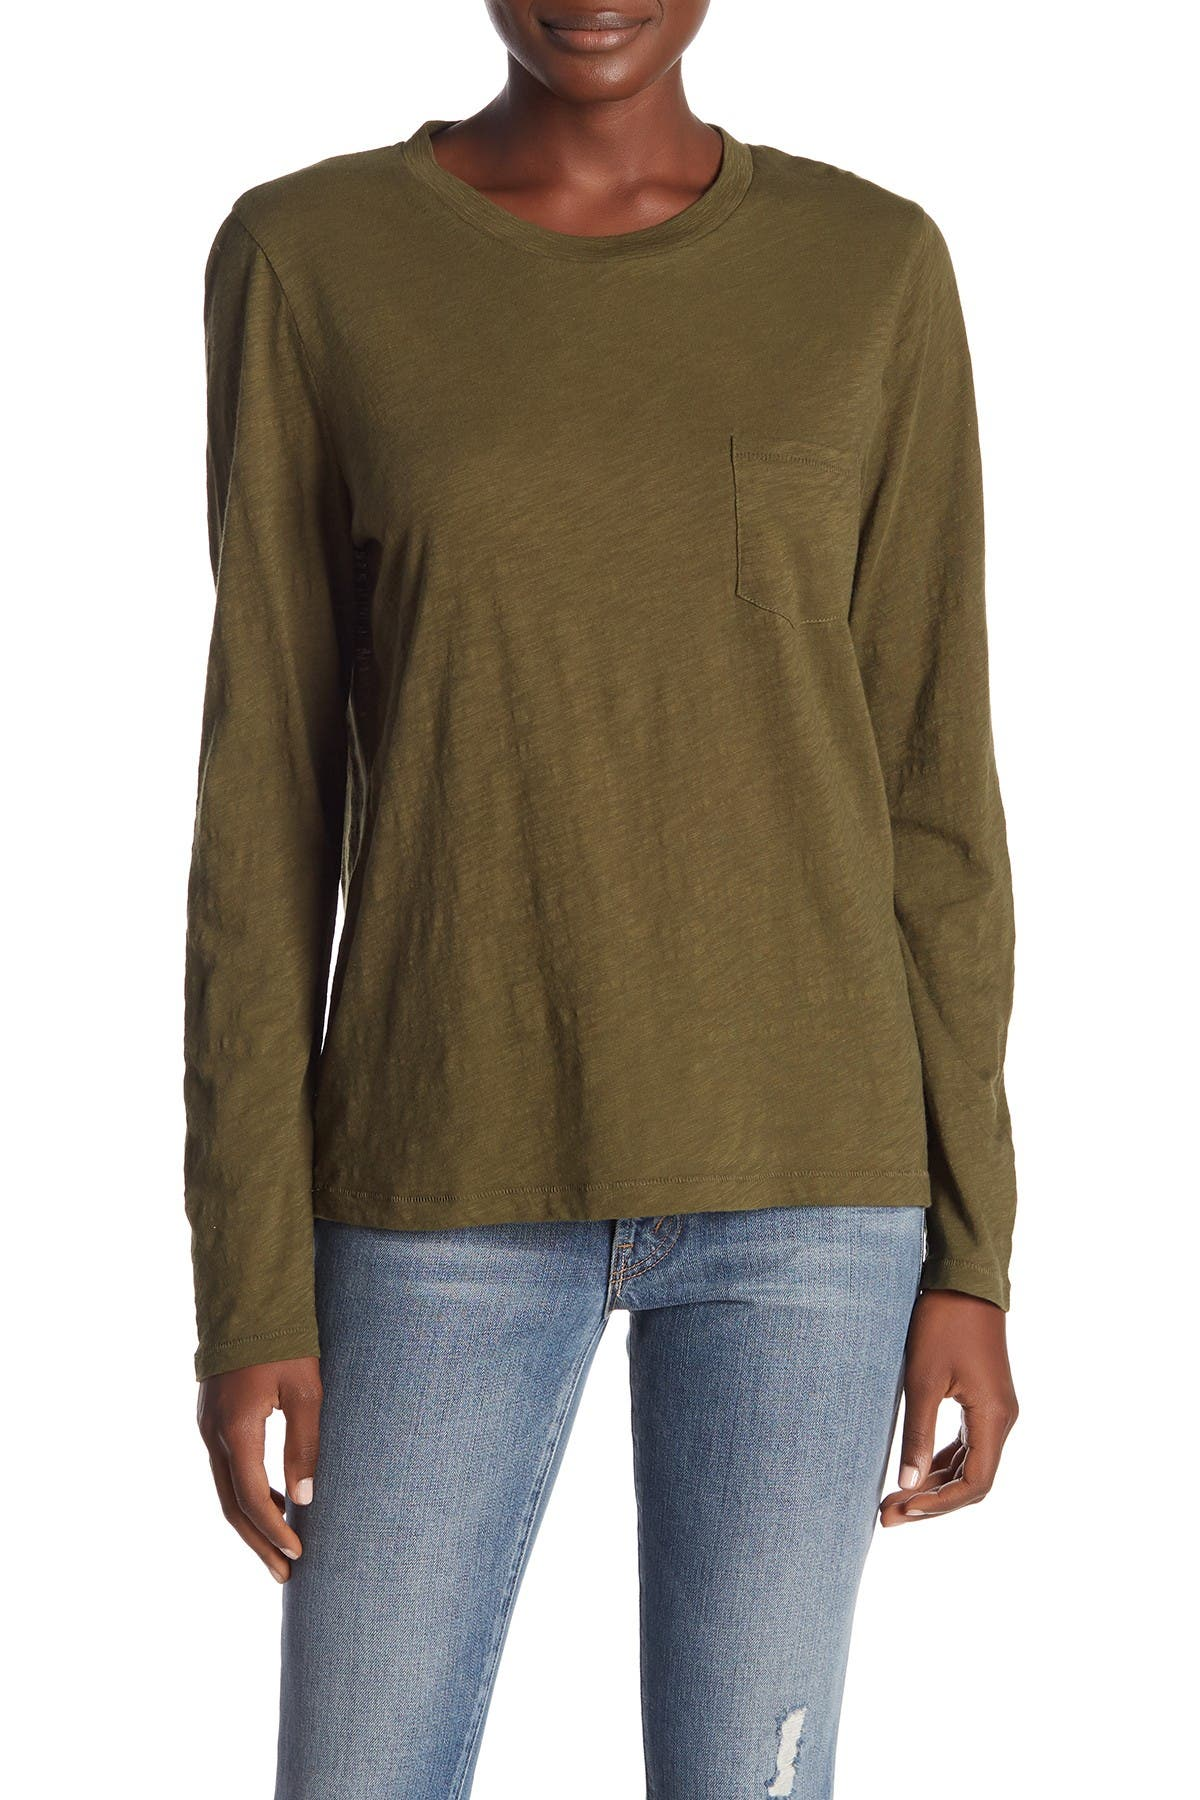 Image of Madewell Crew Neck Long Sleeve T-Shirt